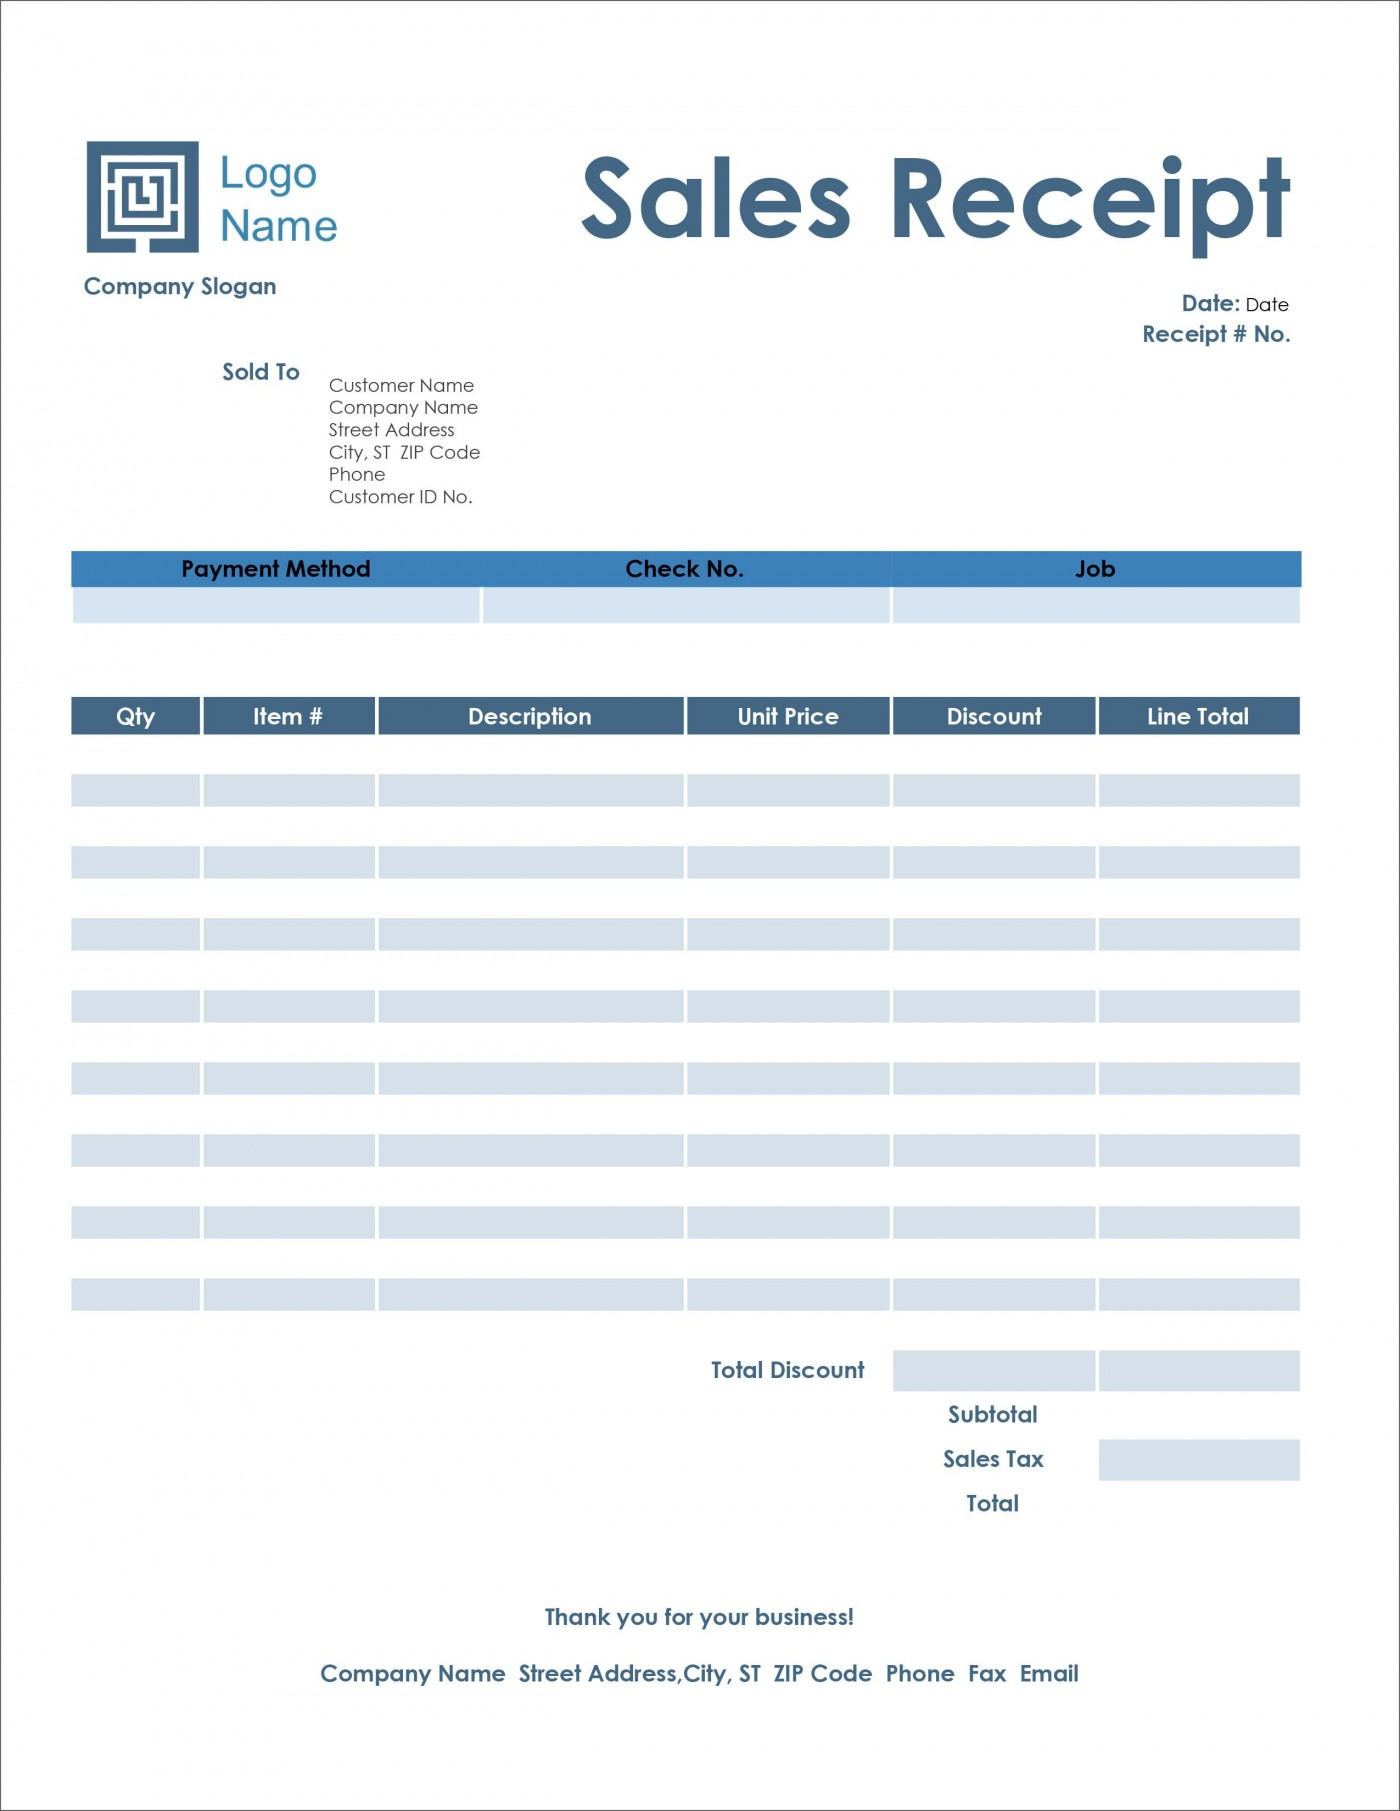 004 Unusual Rent Receipt Template Docx High Definition  Format India Car Rental Bill Doc1400